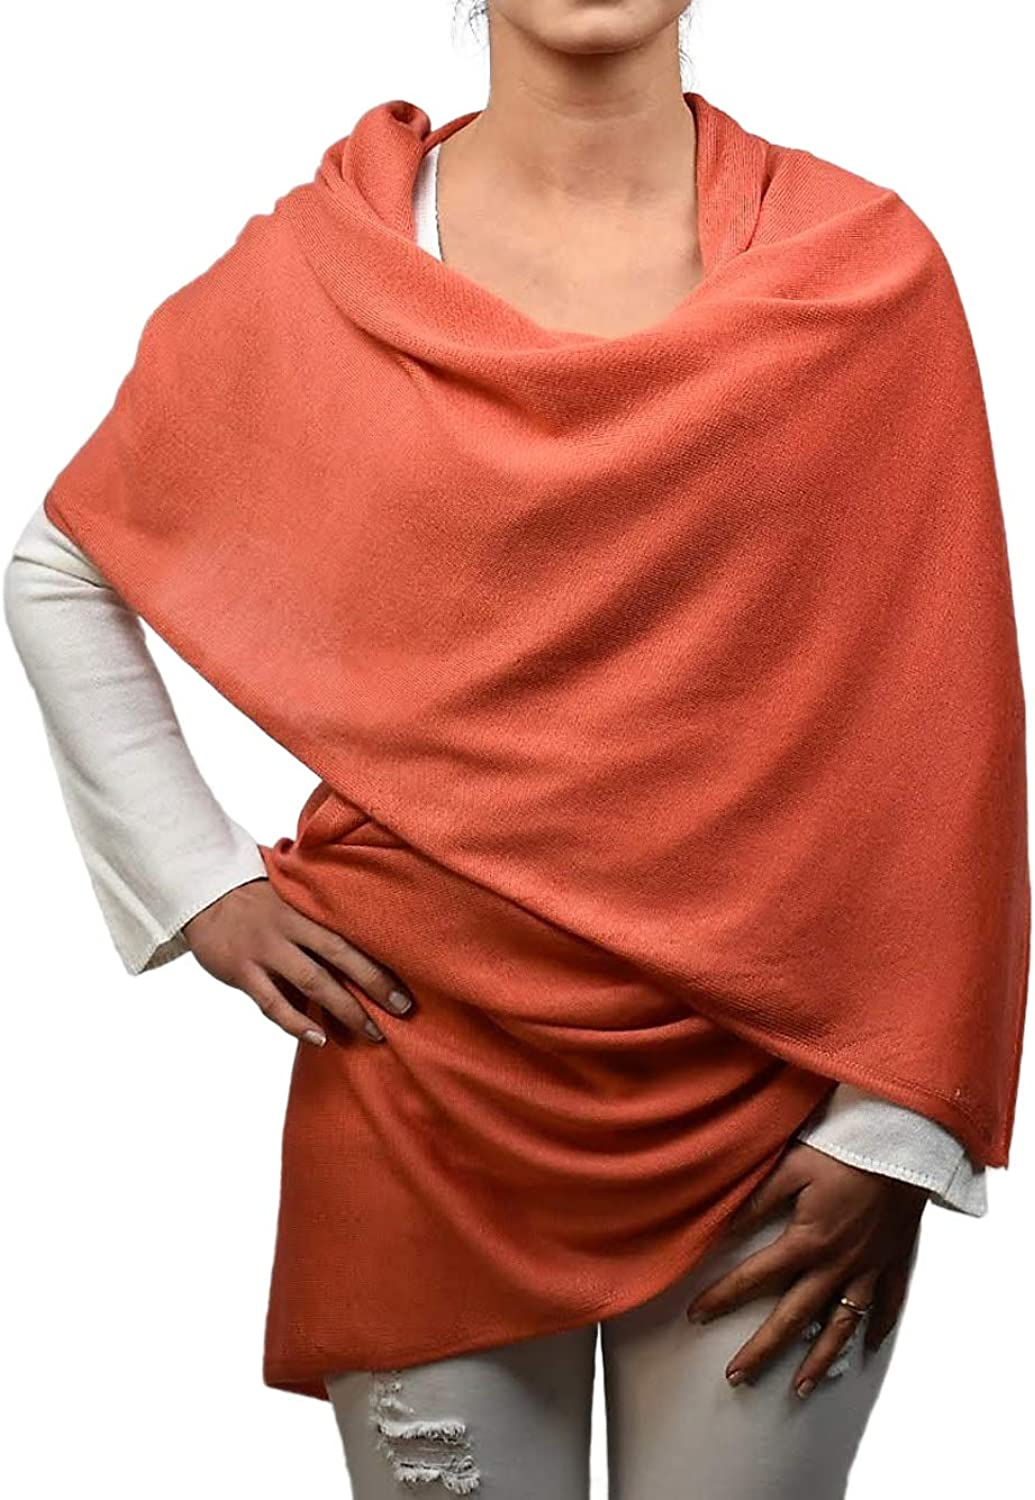 Dalle Piane Cashmere  Pashmina 70% cashmere 30% silk  Made in   Woman, color  orange, One size